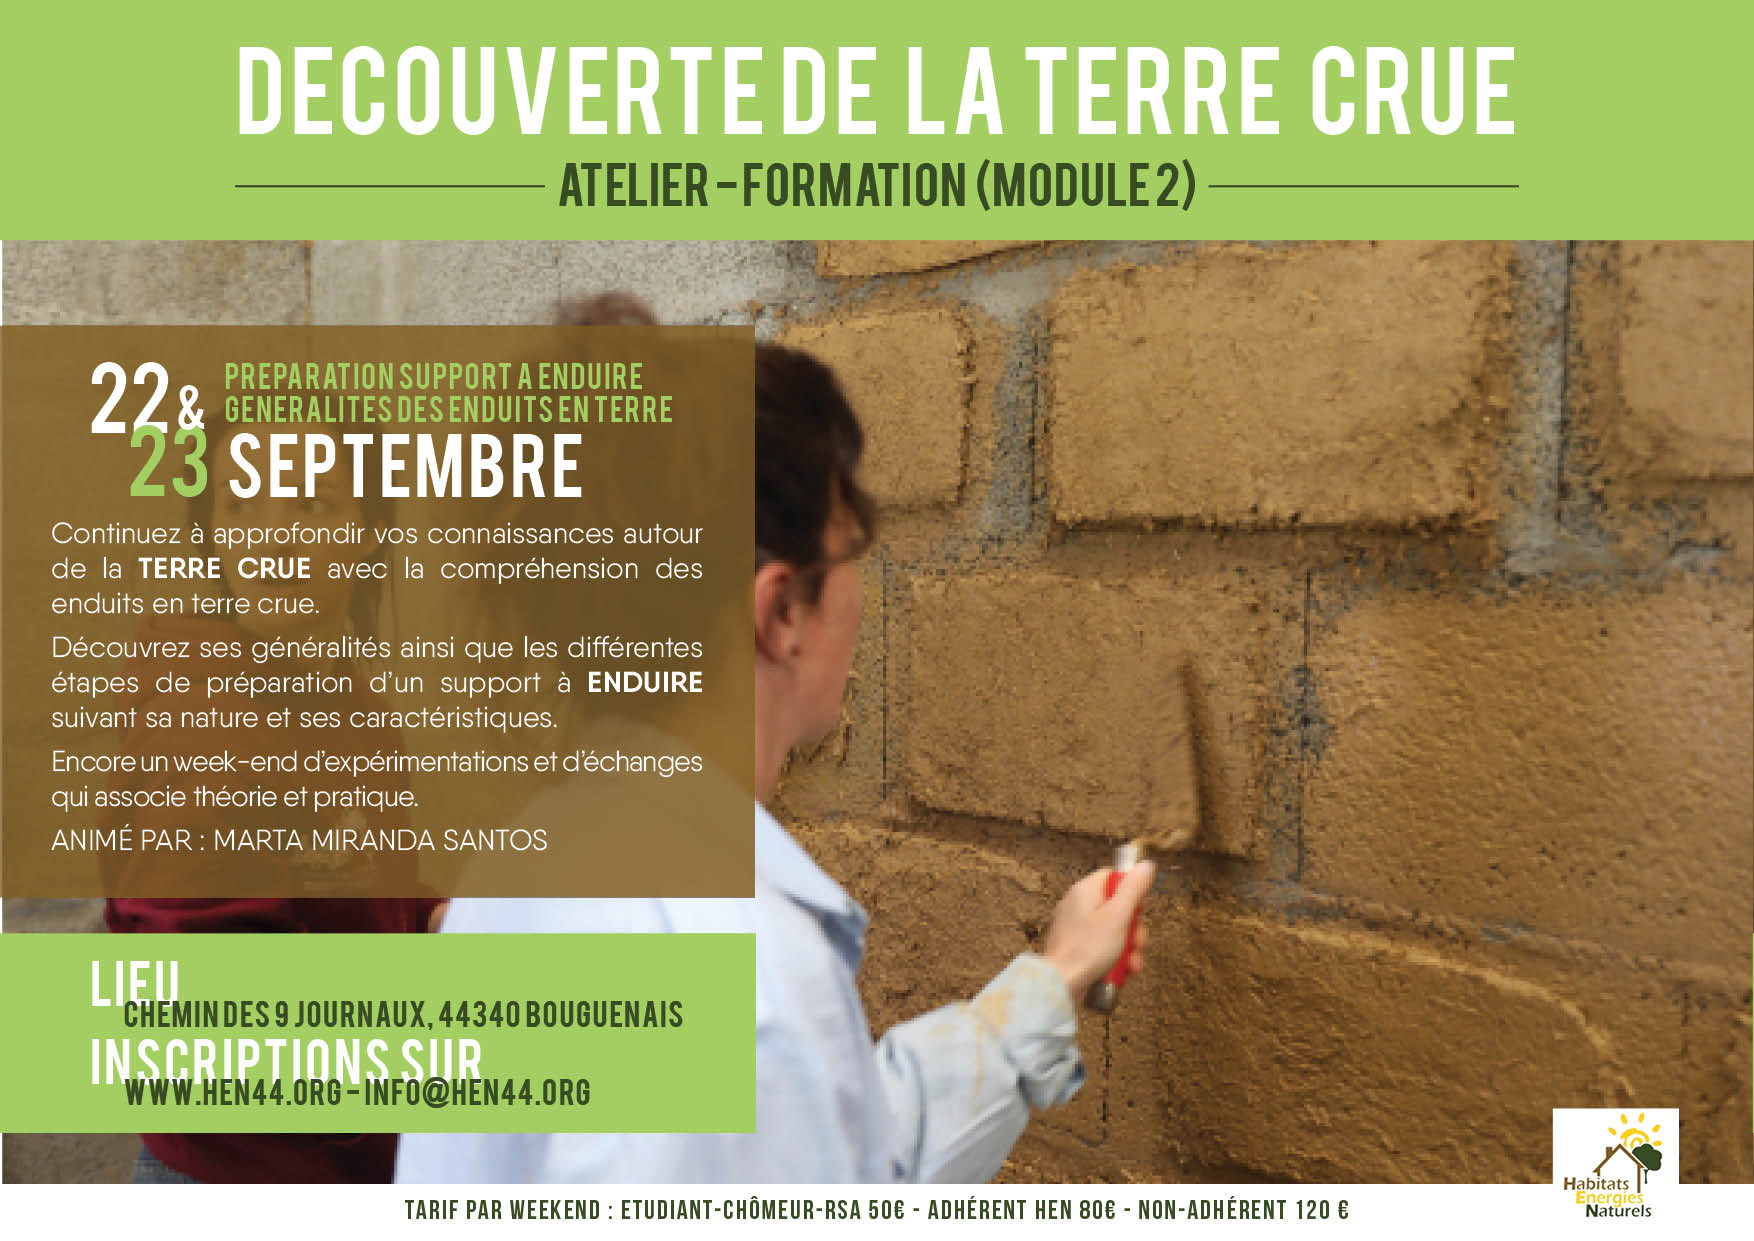 ATELIER-FORMATION DECOUVERTE TERRE-MODULE 2. MediTERRE, the network of Mediterranean professionals of raw earth construction.